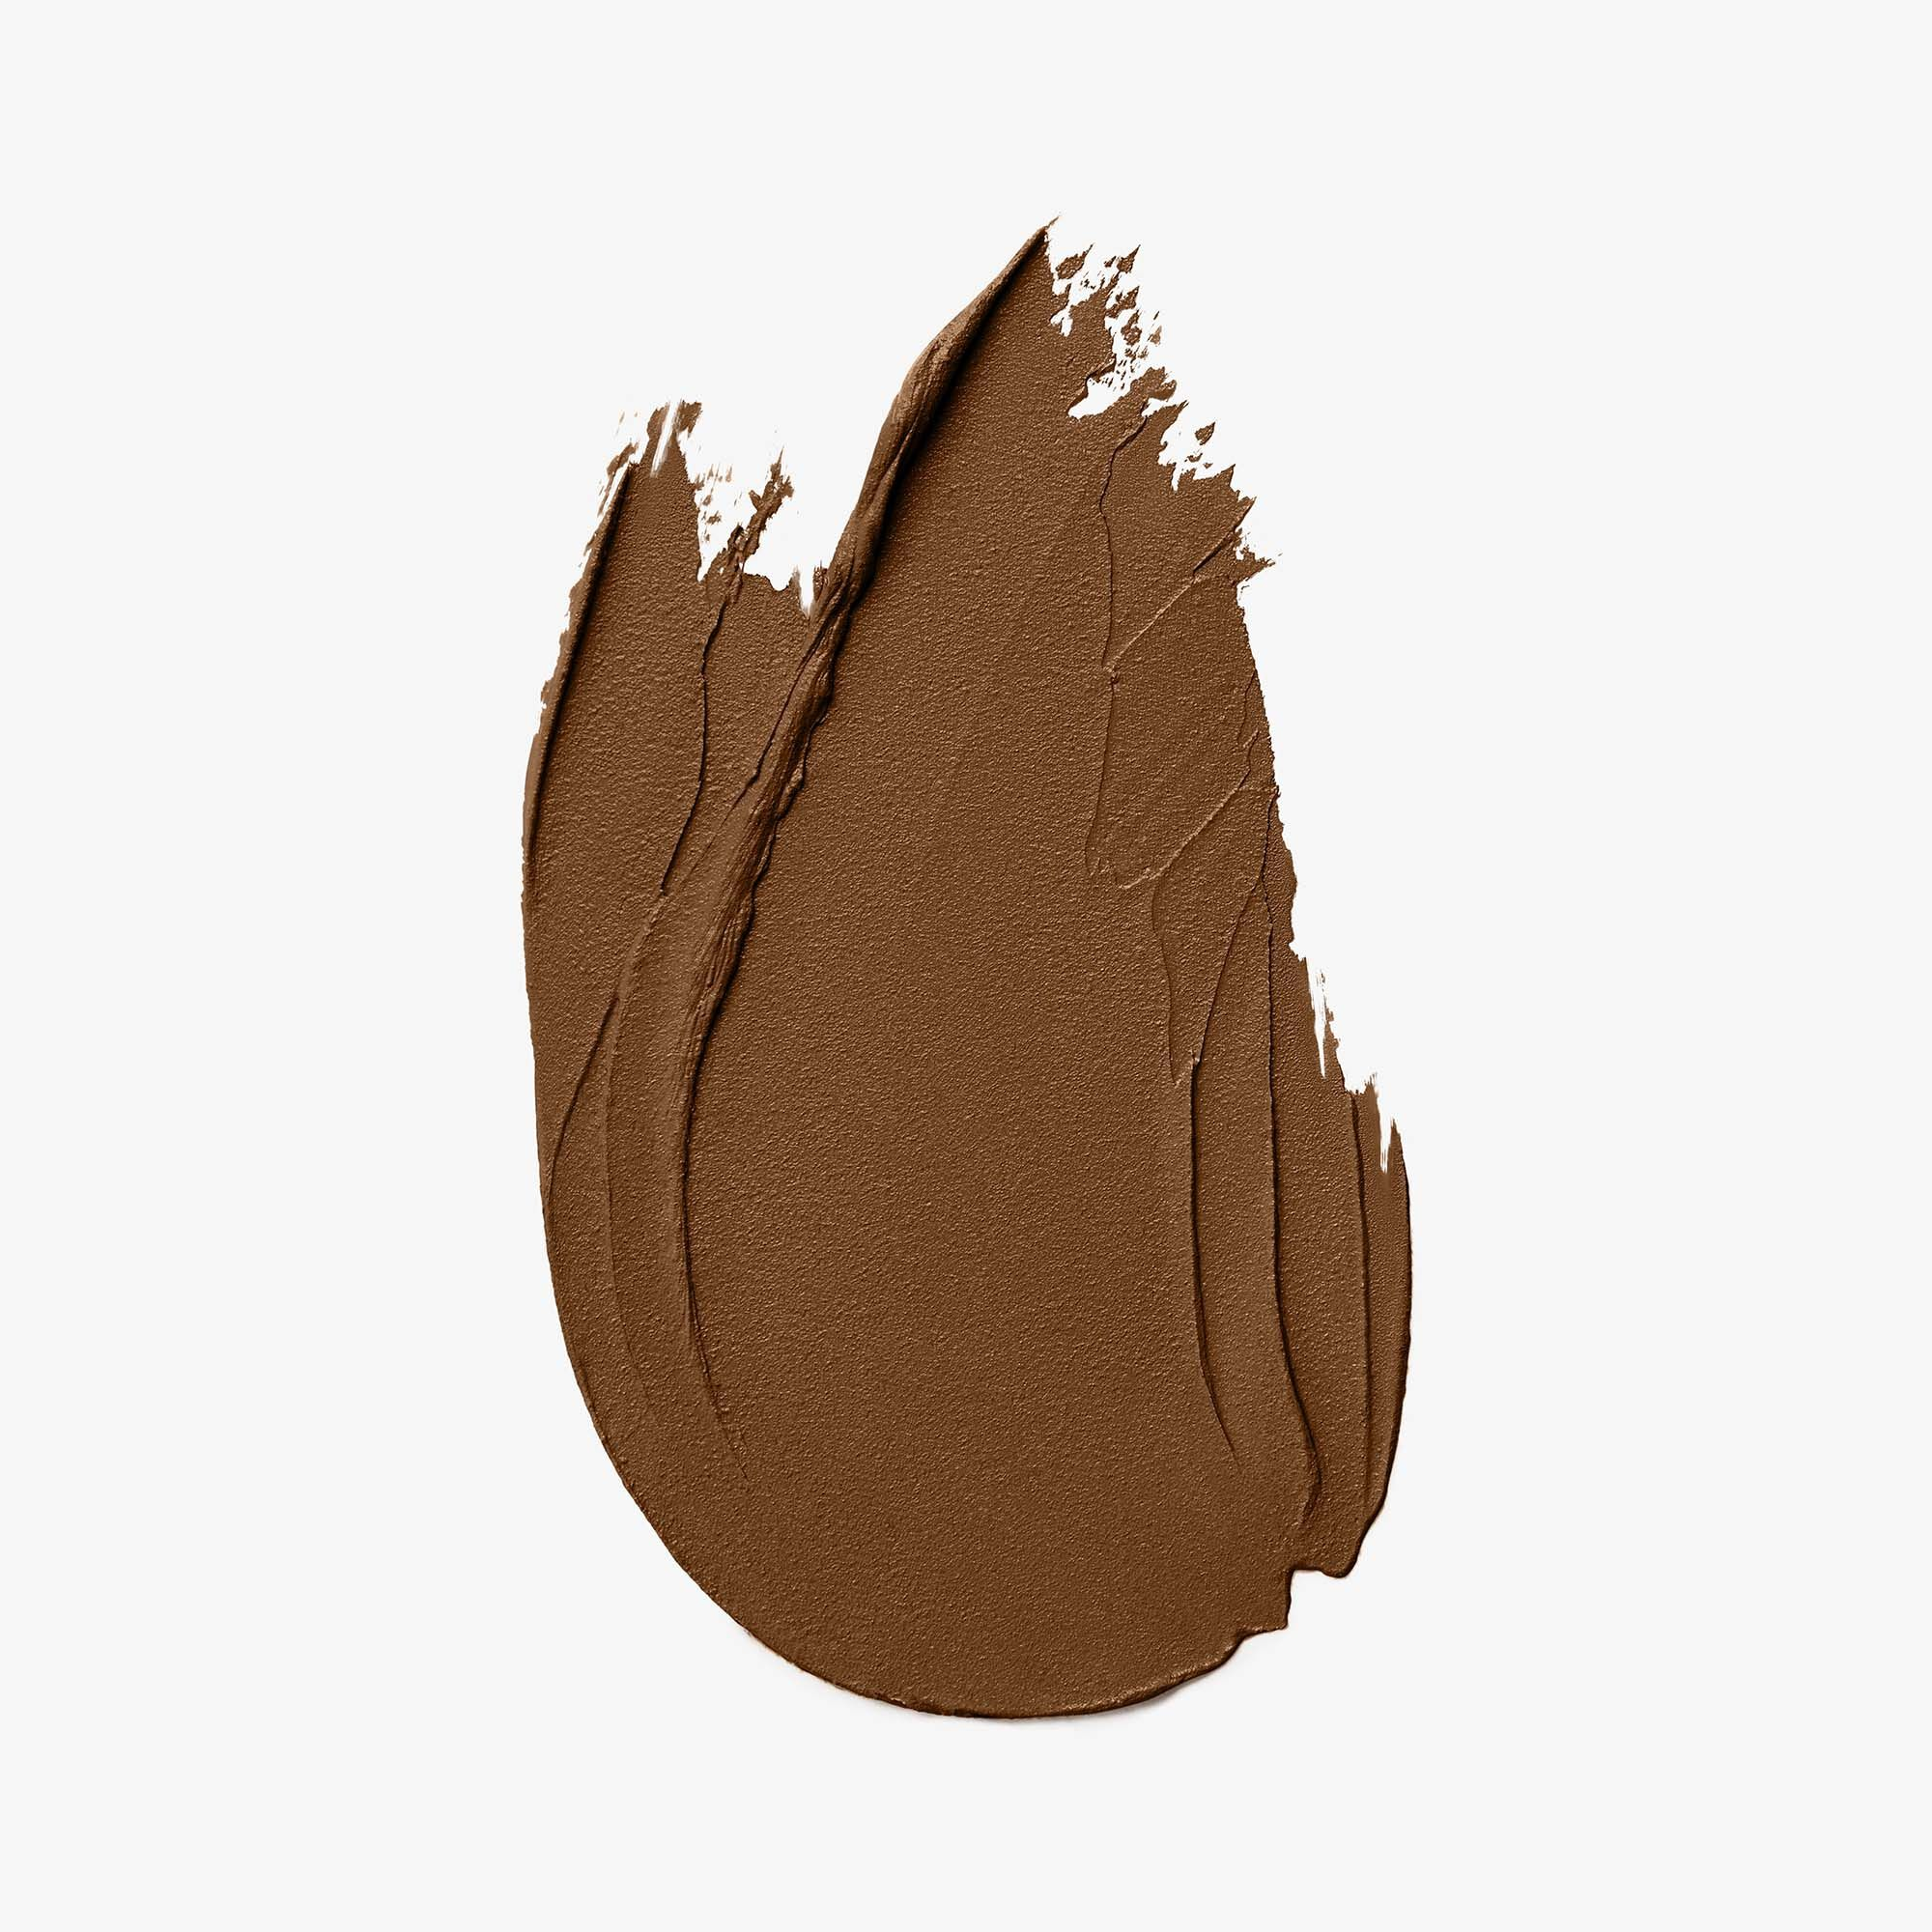 Cream Foundation, Cocoa